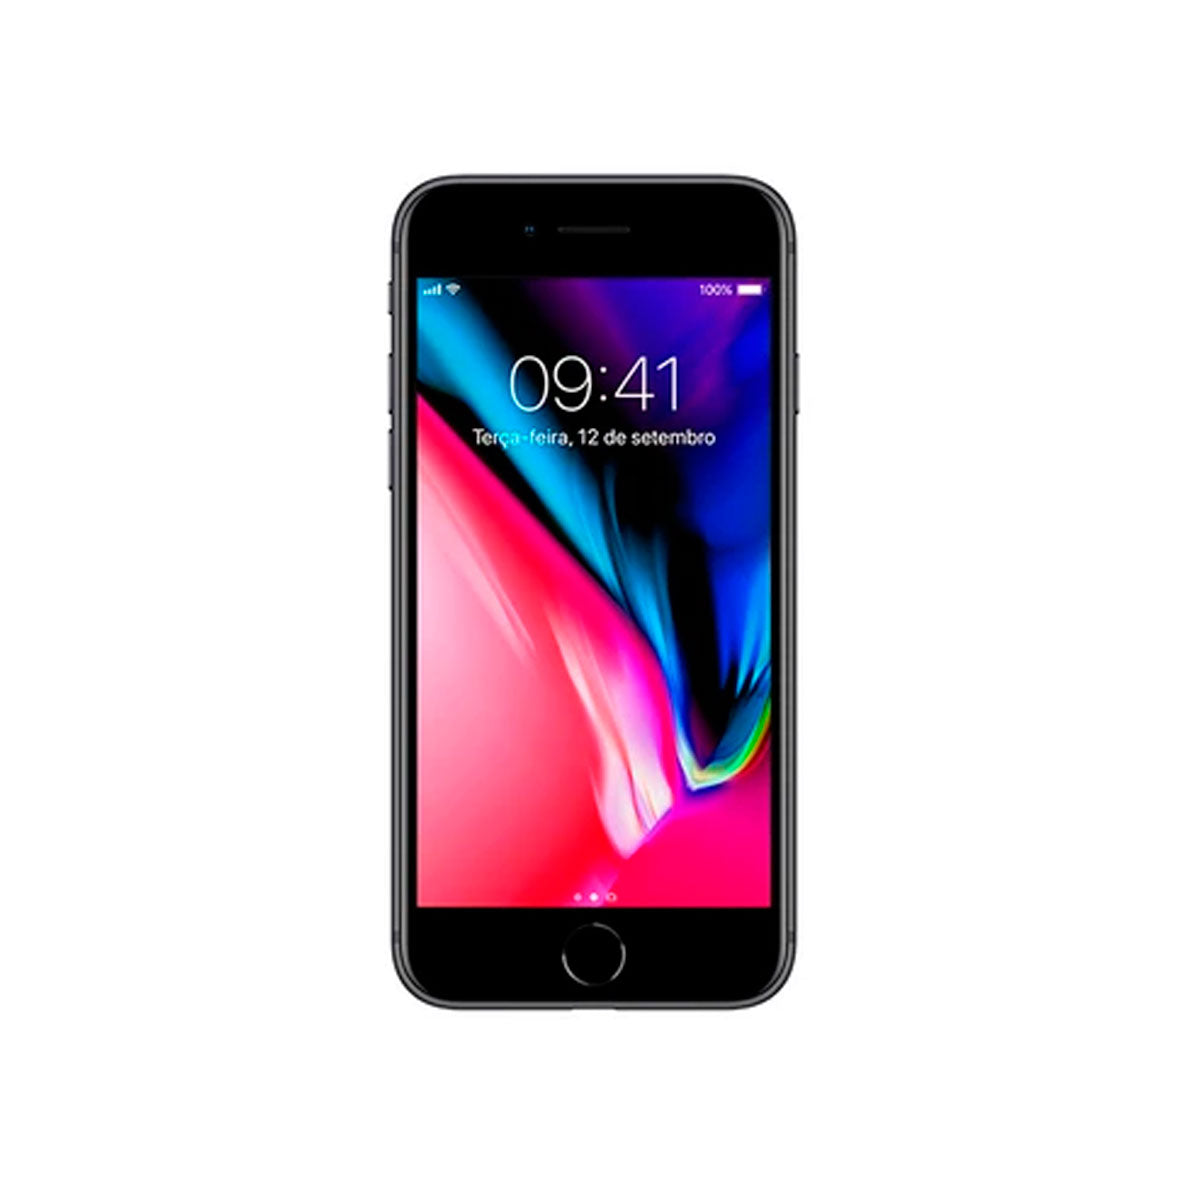 Smartphone Seminovo Apple iPhone 8 2GB 64GB 4.7